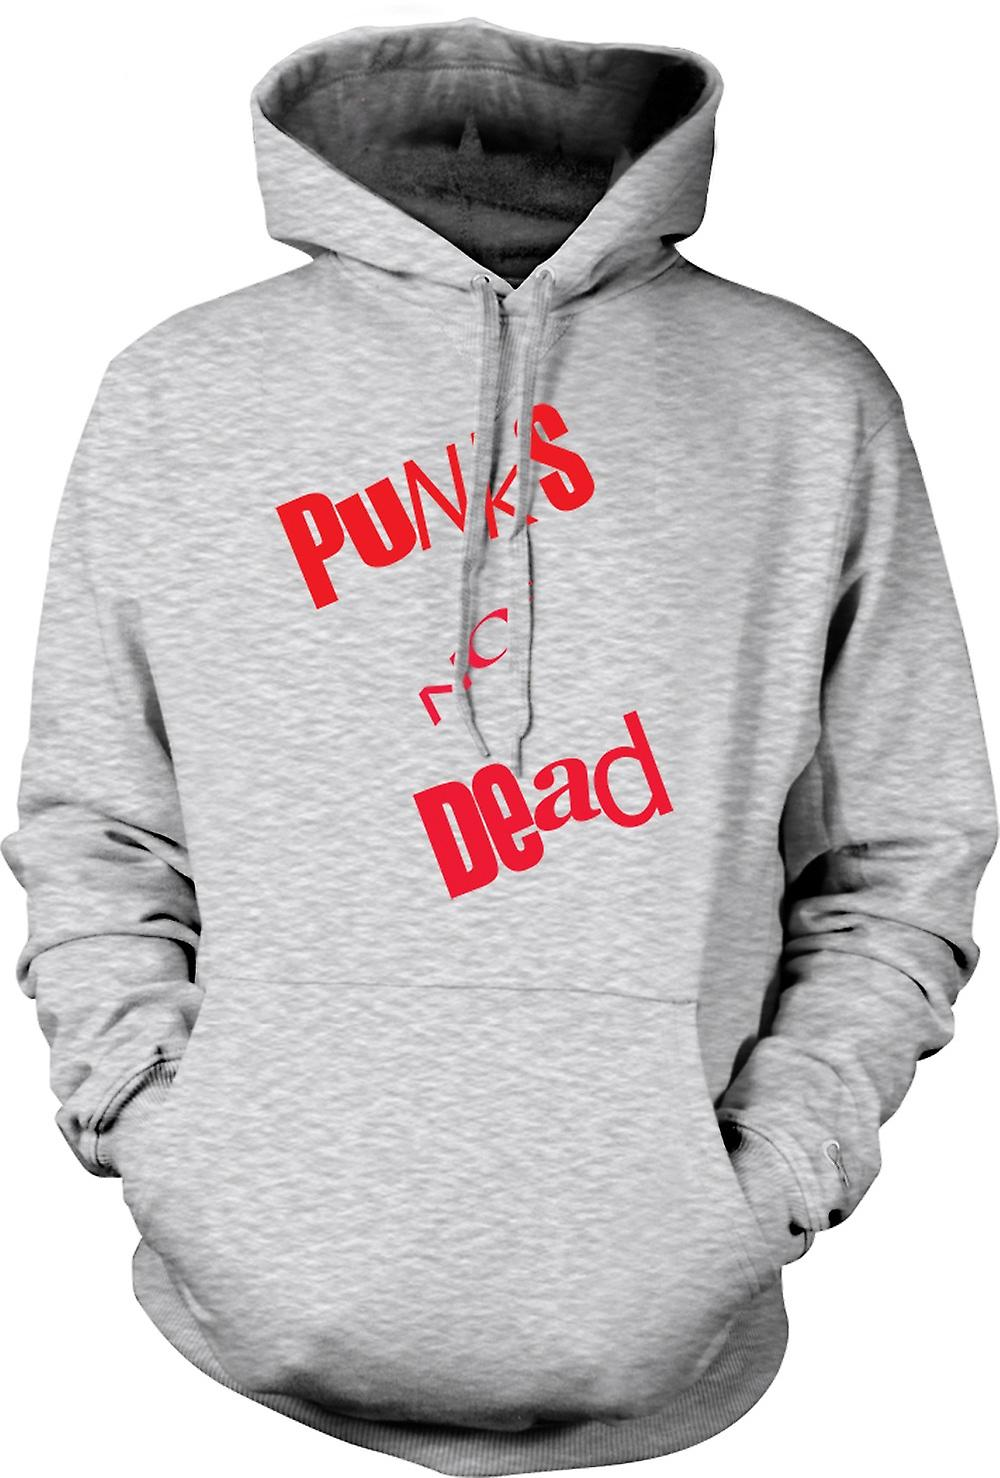 Mens Hoodie - Punks Not Dead - Punk